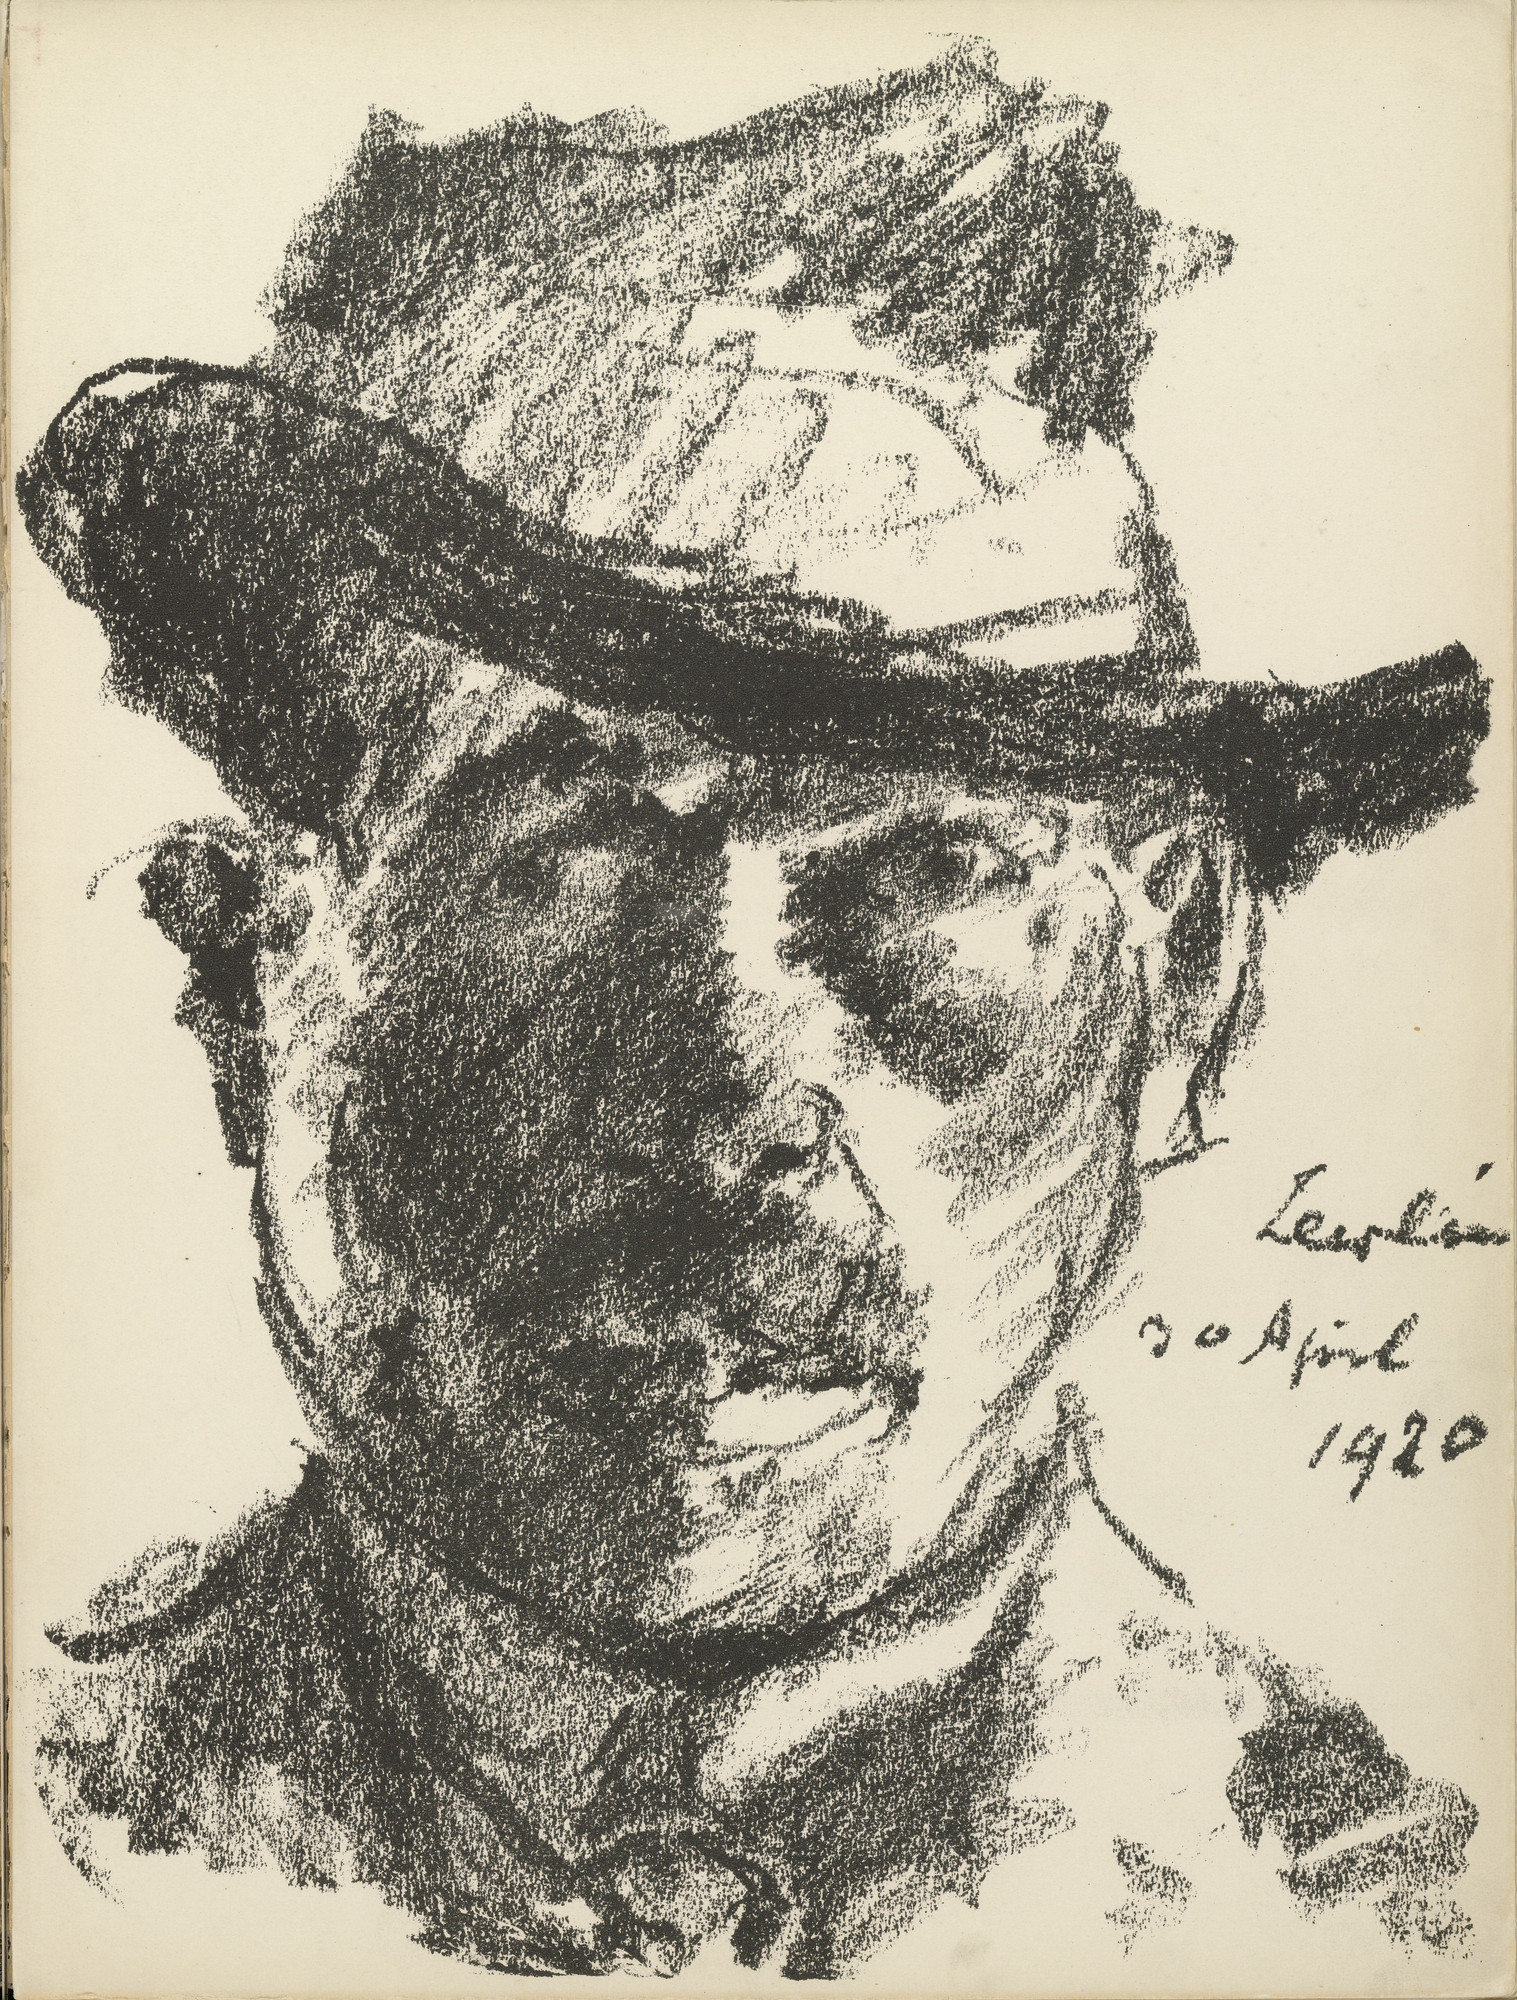 Lovis Corinth. Self-Portrait (Selbstbildnis) (plate 1) from the illustrated book Deutsche Graphiker der Gegenwart (German Printmakers of Our Time). 1920